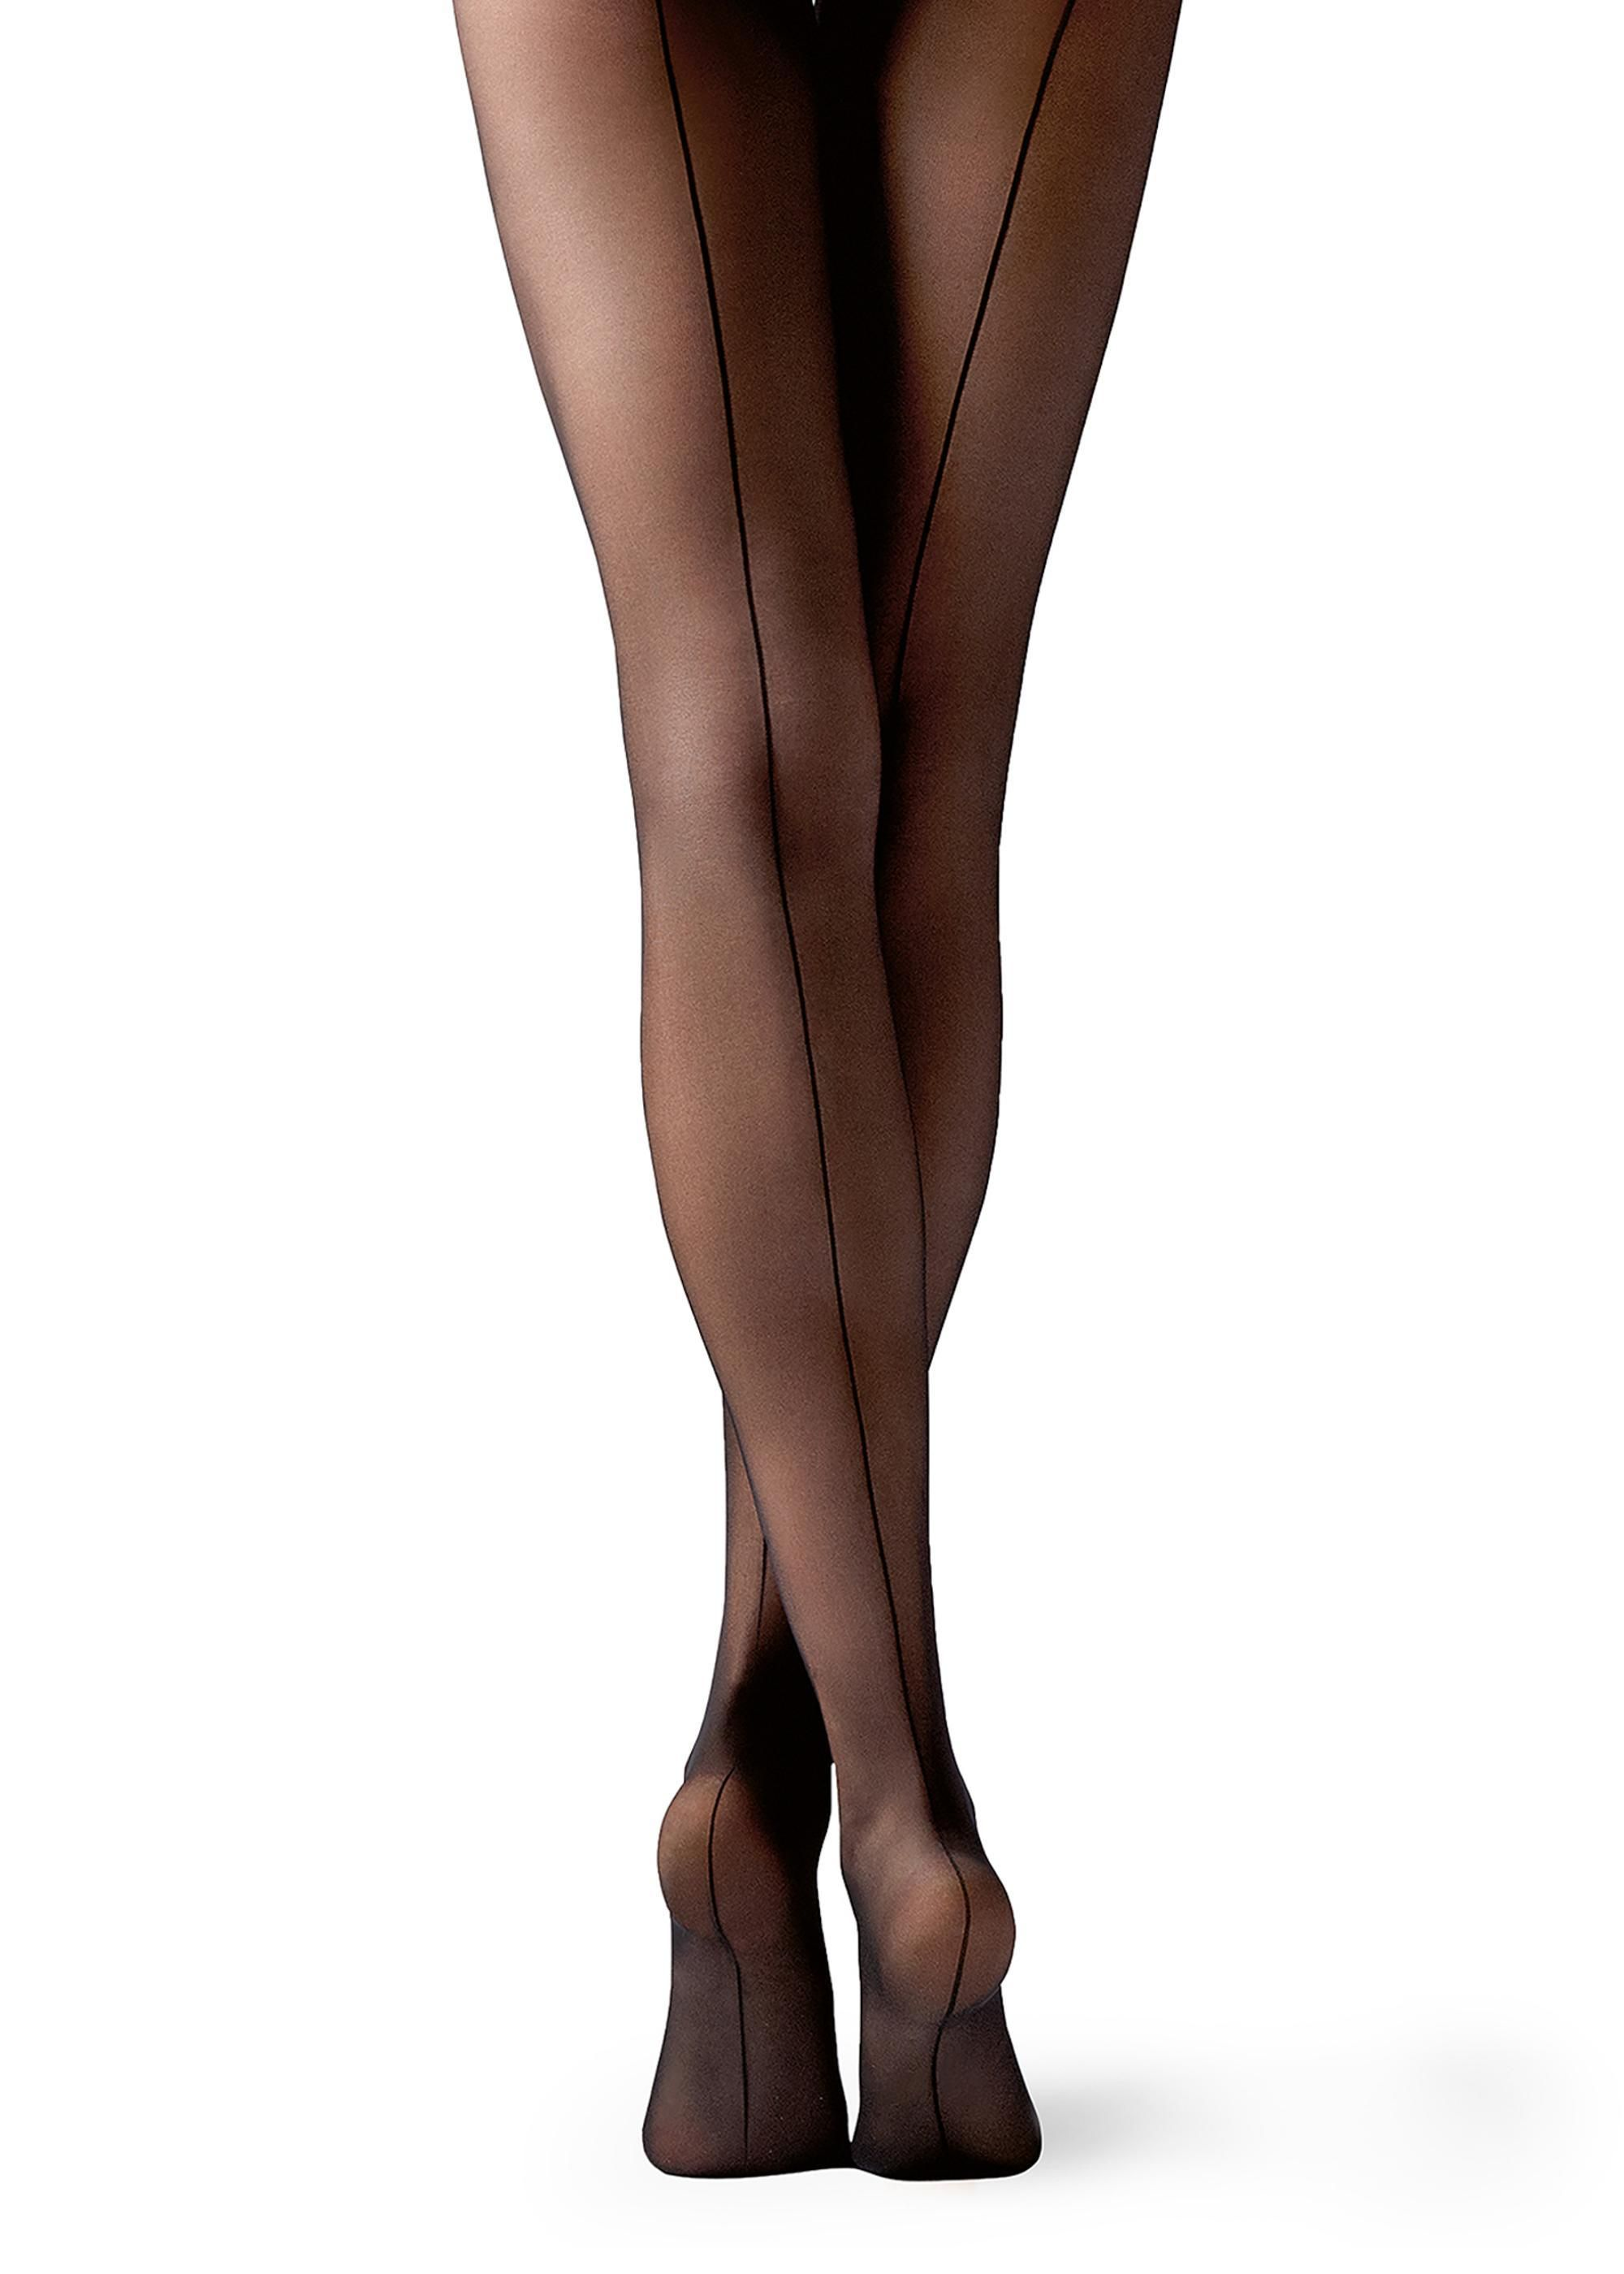 124a205769c 20 Denier Sheer Back Seam Tights - Calzedonia Stockings Outfit